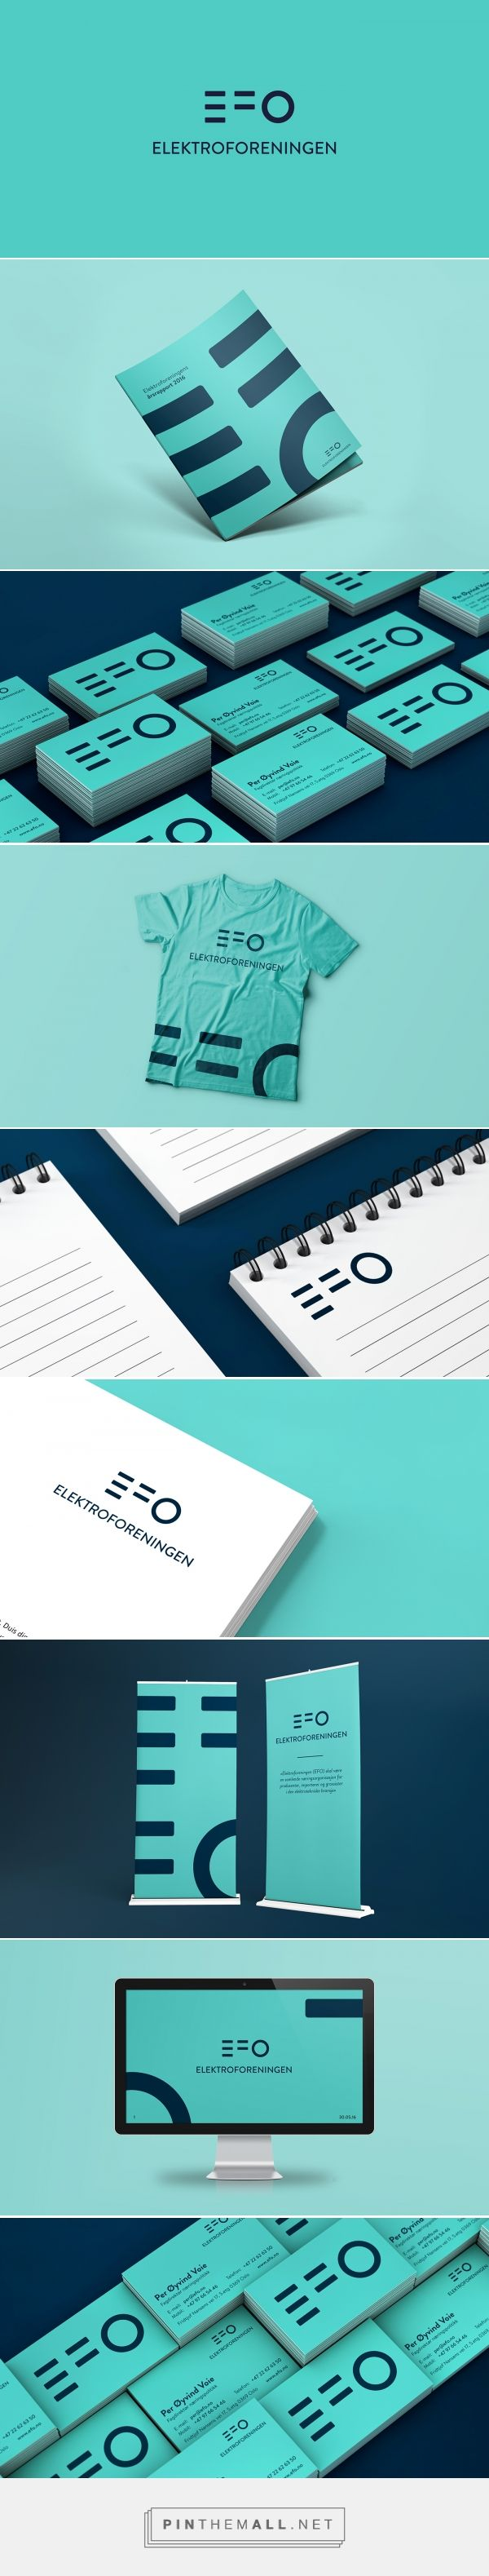 EFO Electrical Trade Association Branding by Daniel Brox | Fivestar Branding Agency – Design and Branding Agency & Curated Inspiration Gallery